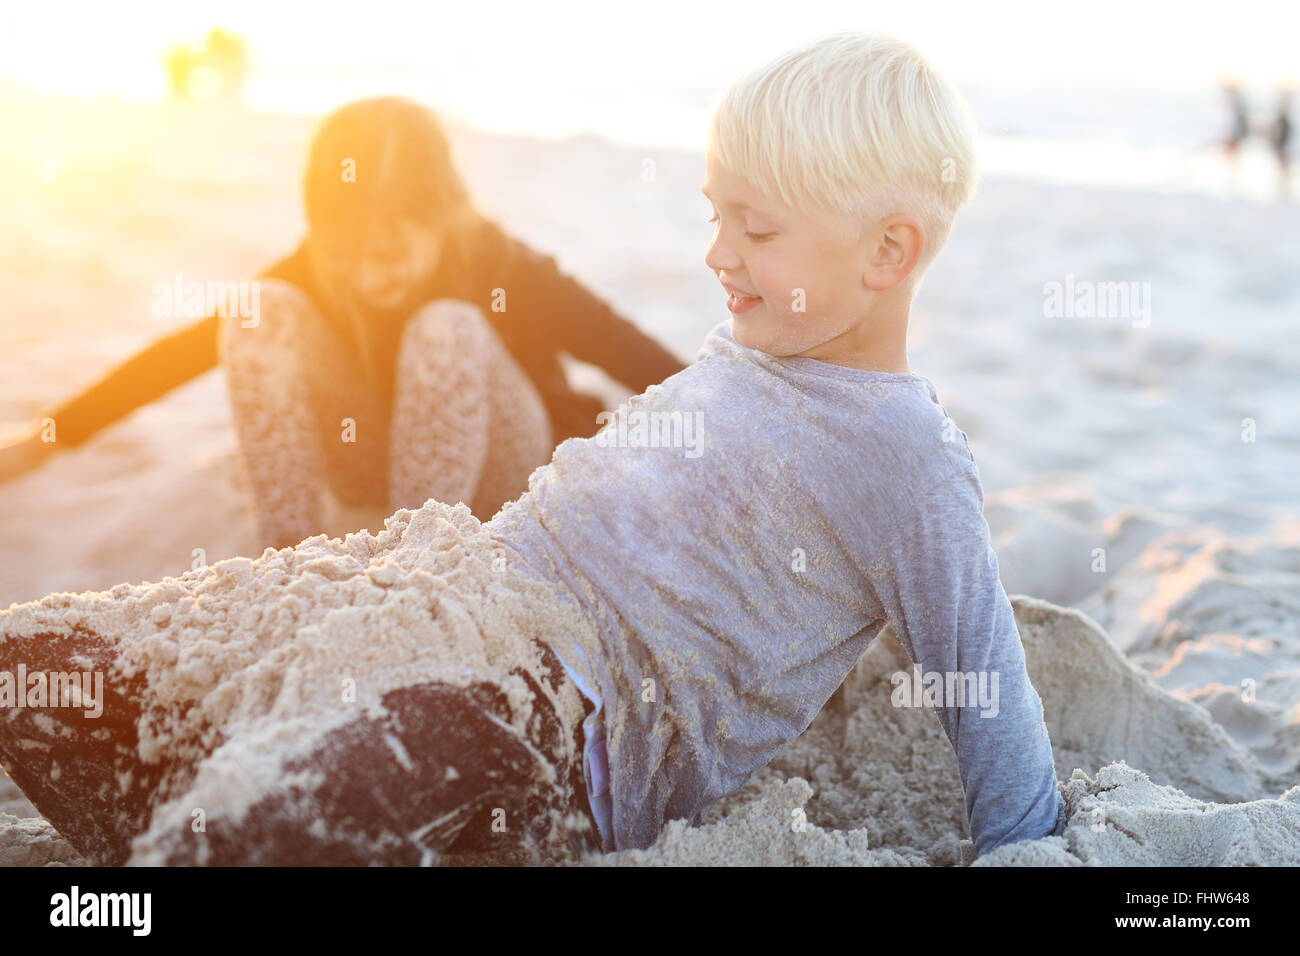 Children on the beach playing in the sand. Happy children girl and boy playing on a sandy beach - Stock Image